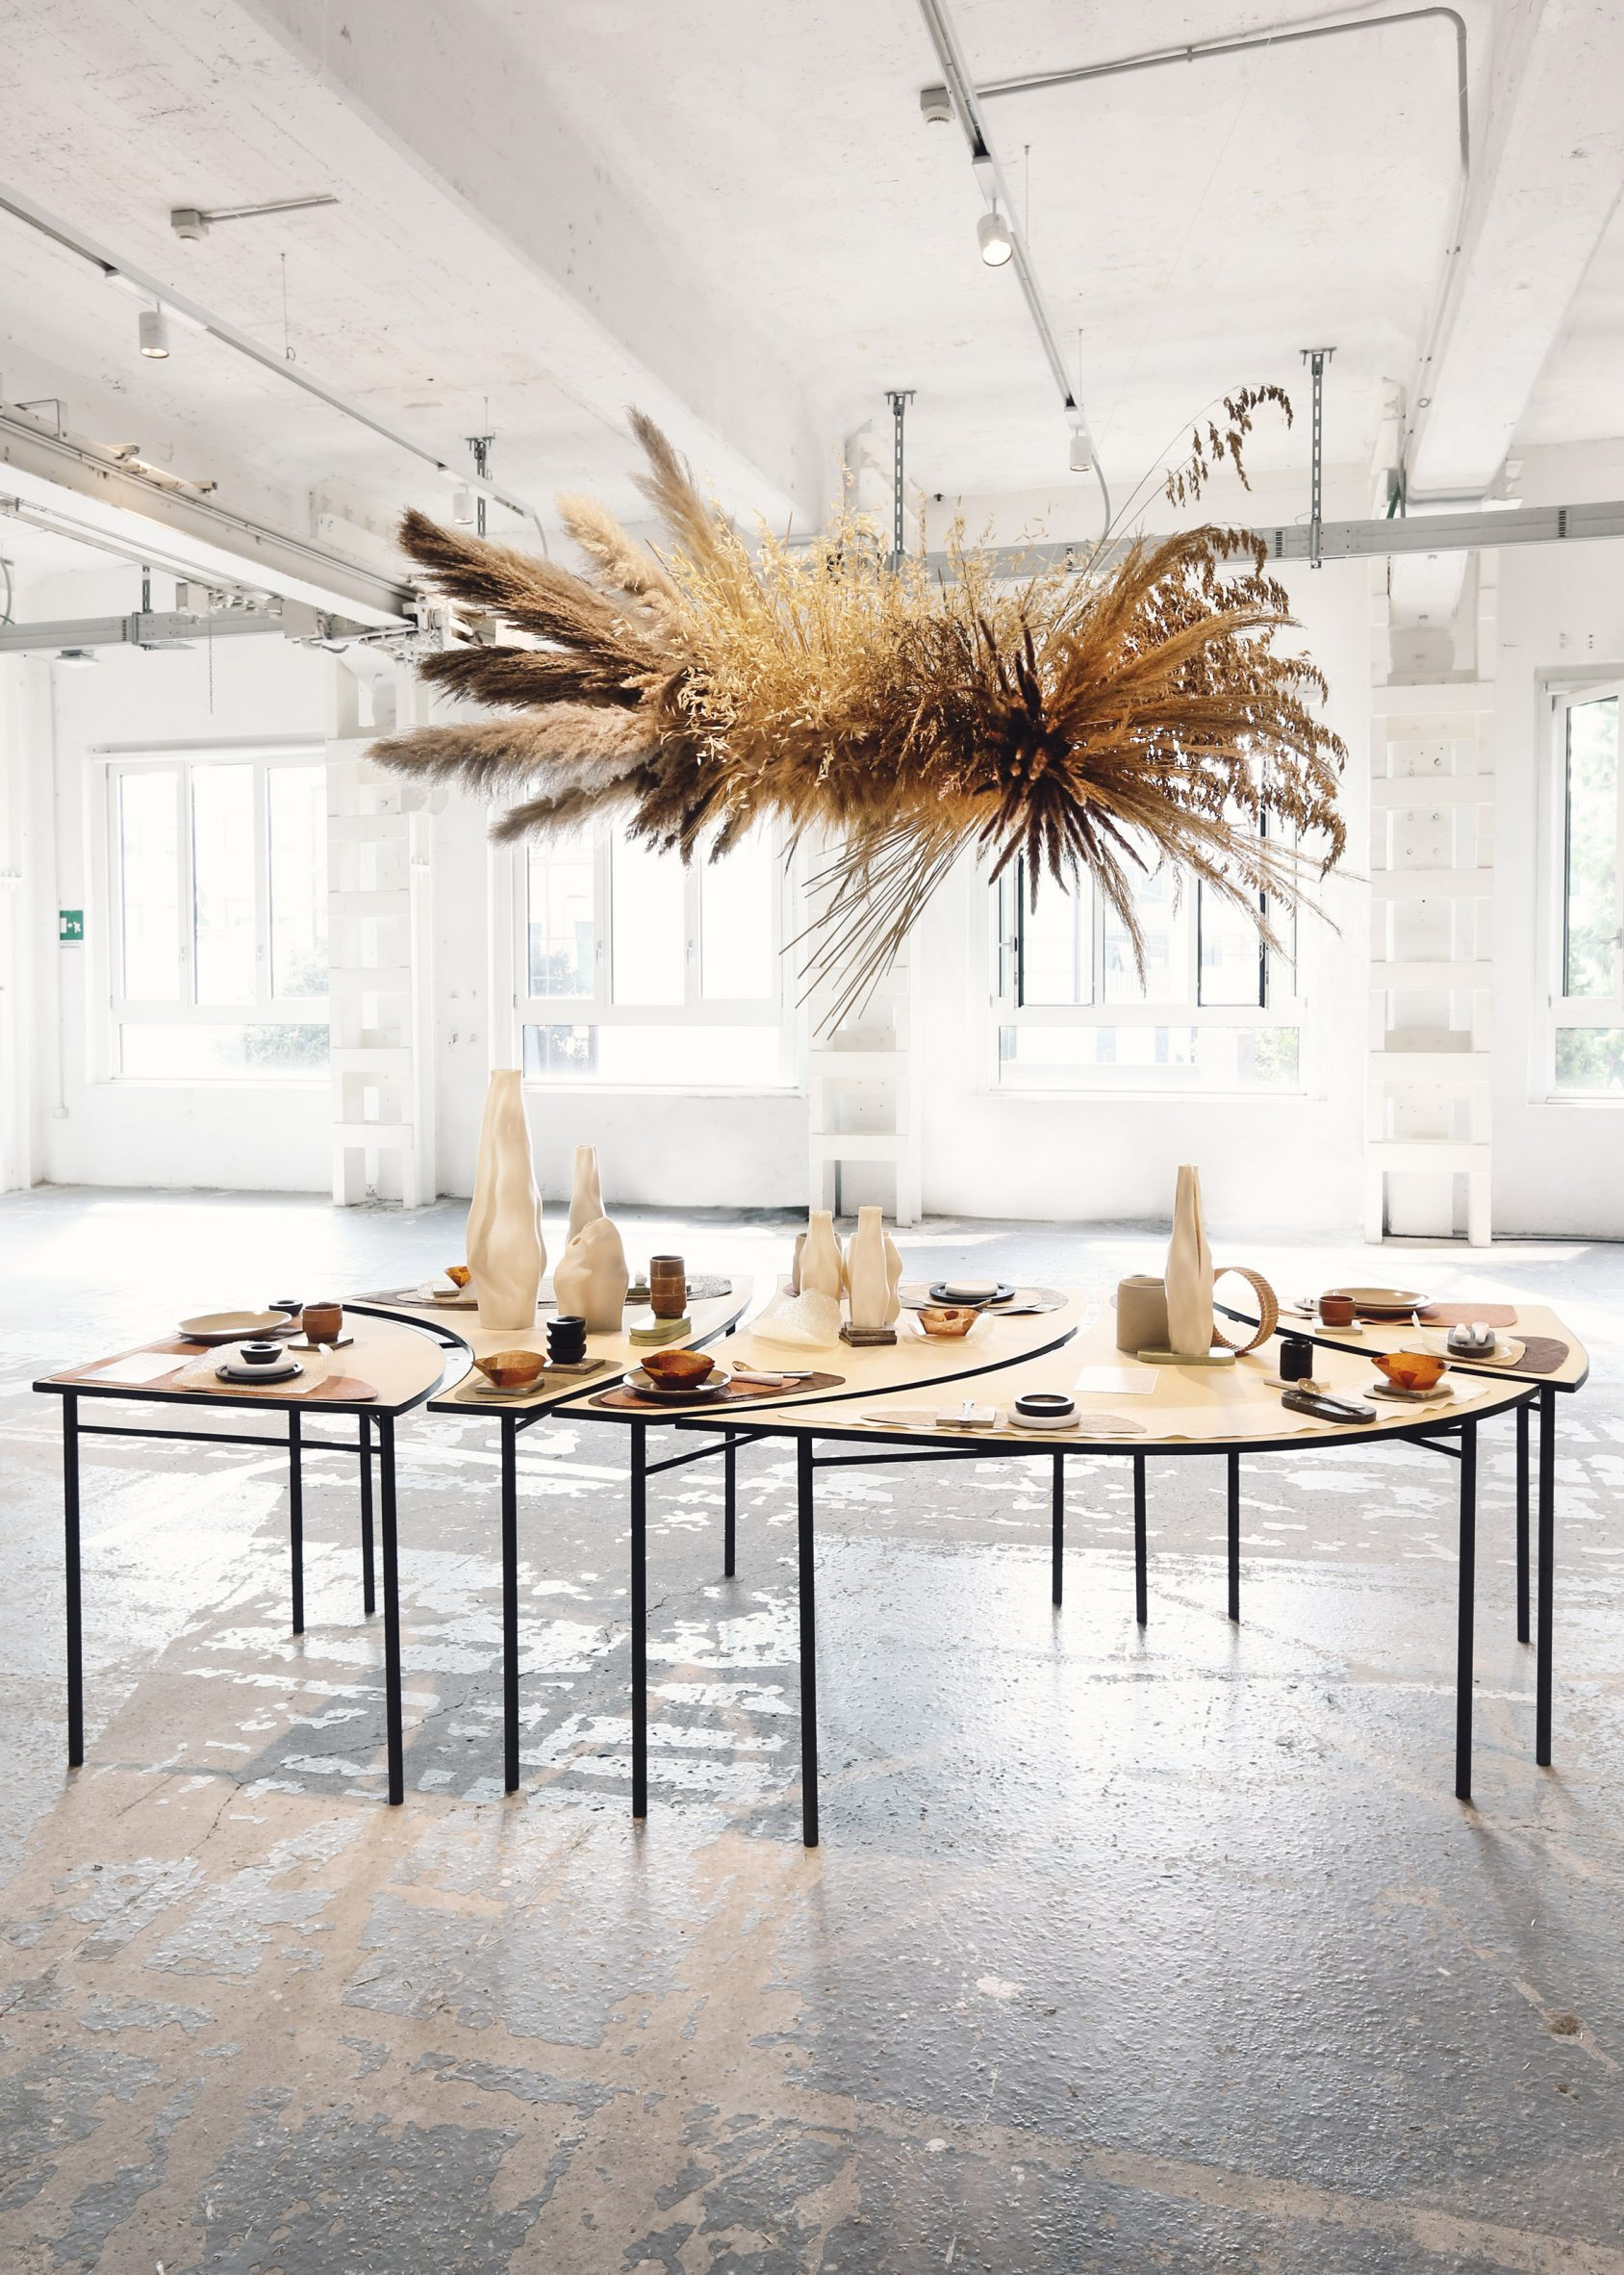 The installation is a table setting